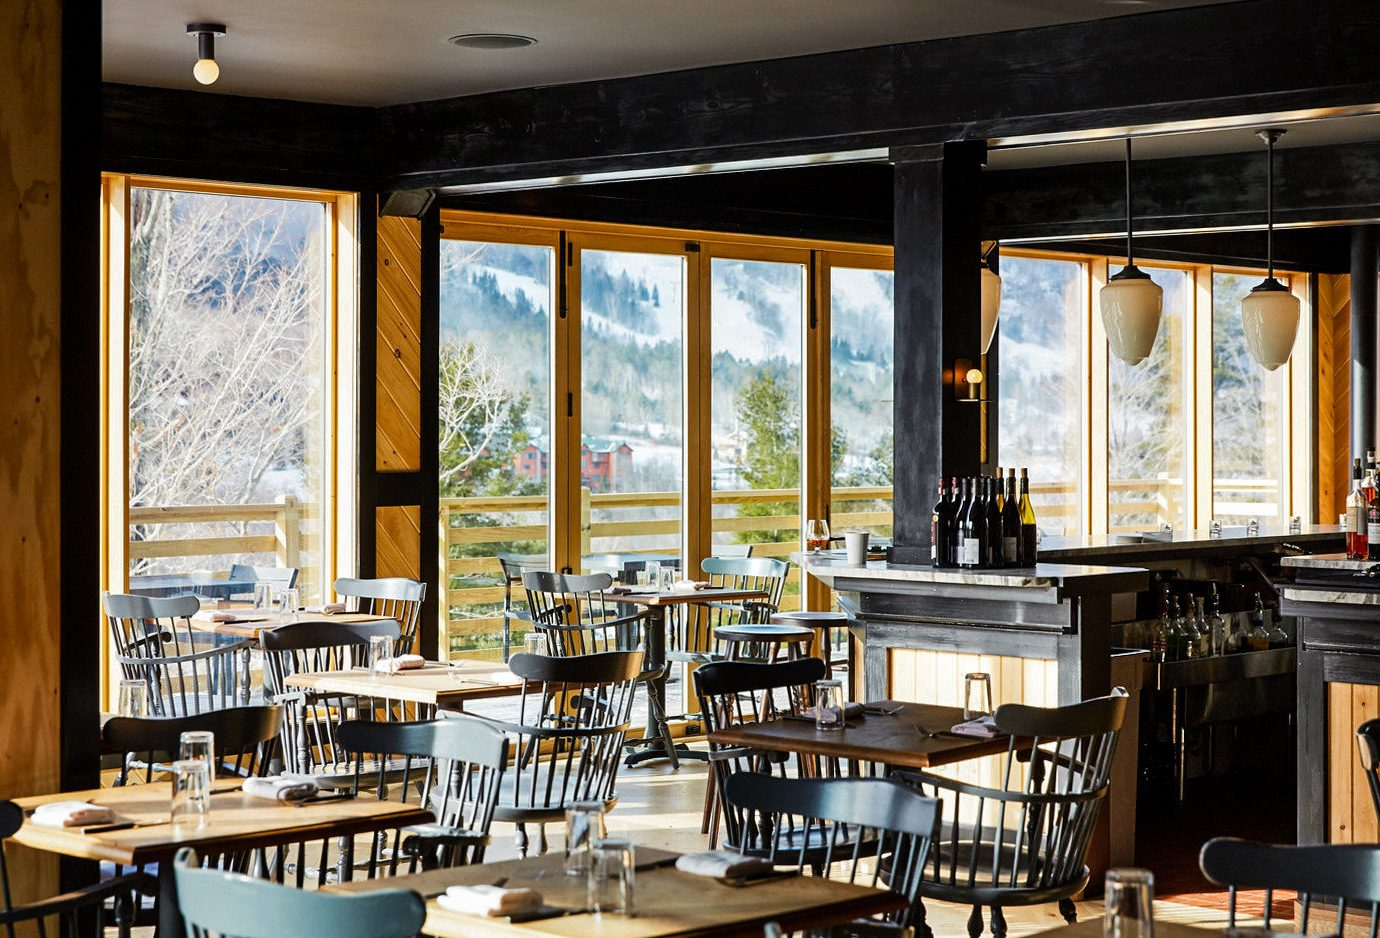 alpine skiing East Coast USA Trip Ideas table chair indoor Dining restaurant ceiling window wooden interior design café furniture set area dining room dining table